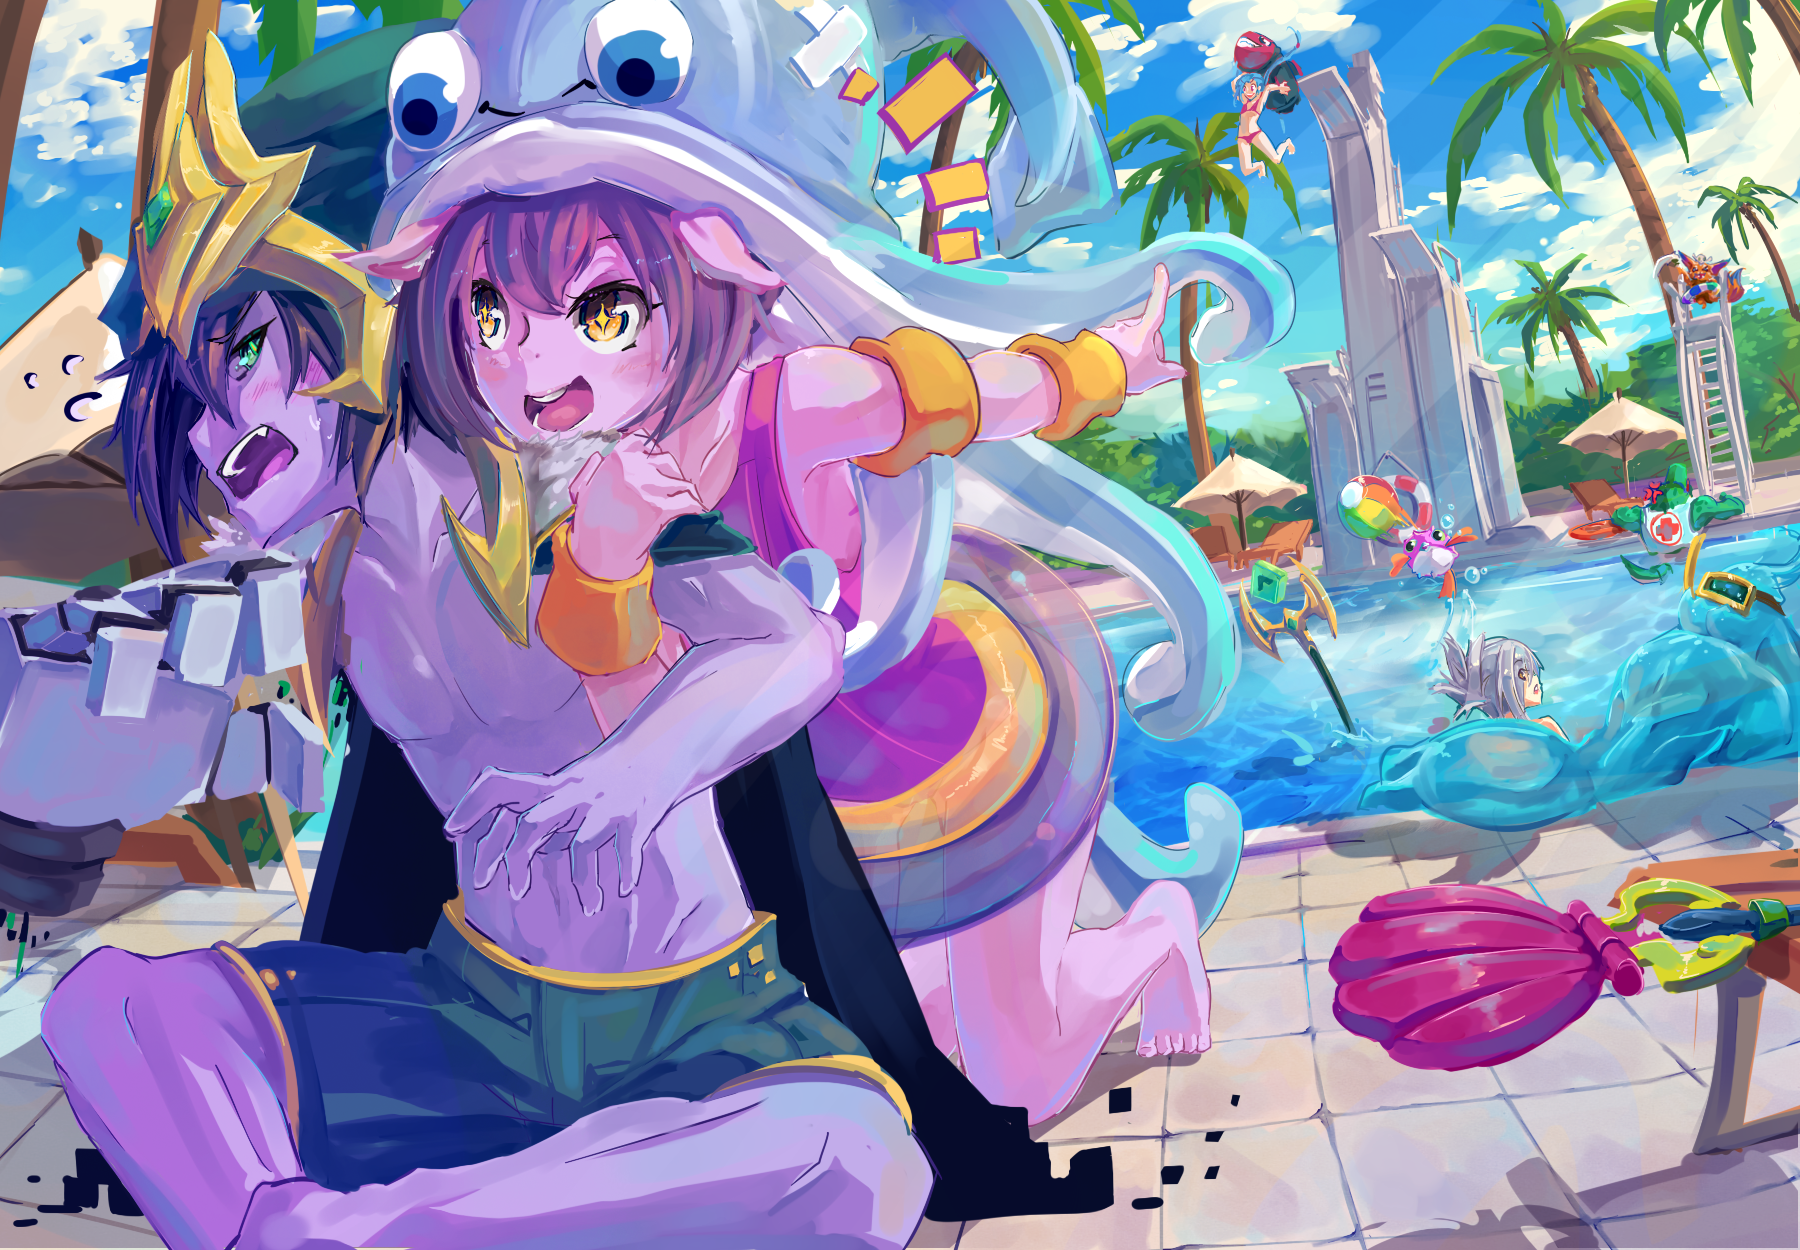 61 Lulu League Of Legends Hd Wallpapers Background Images